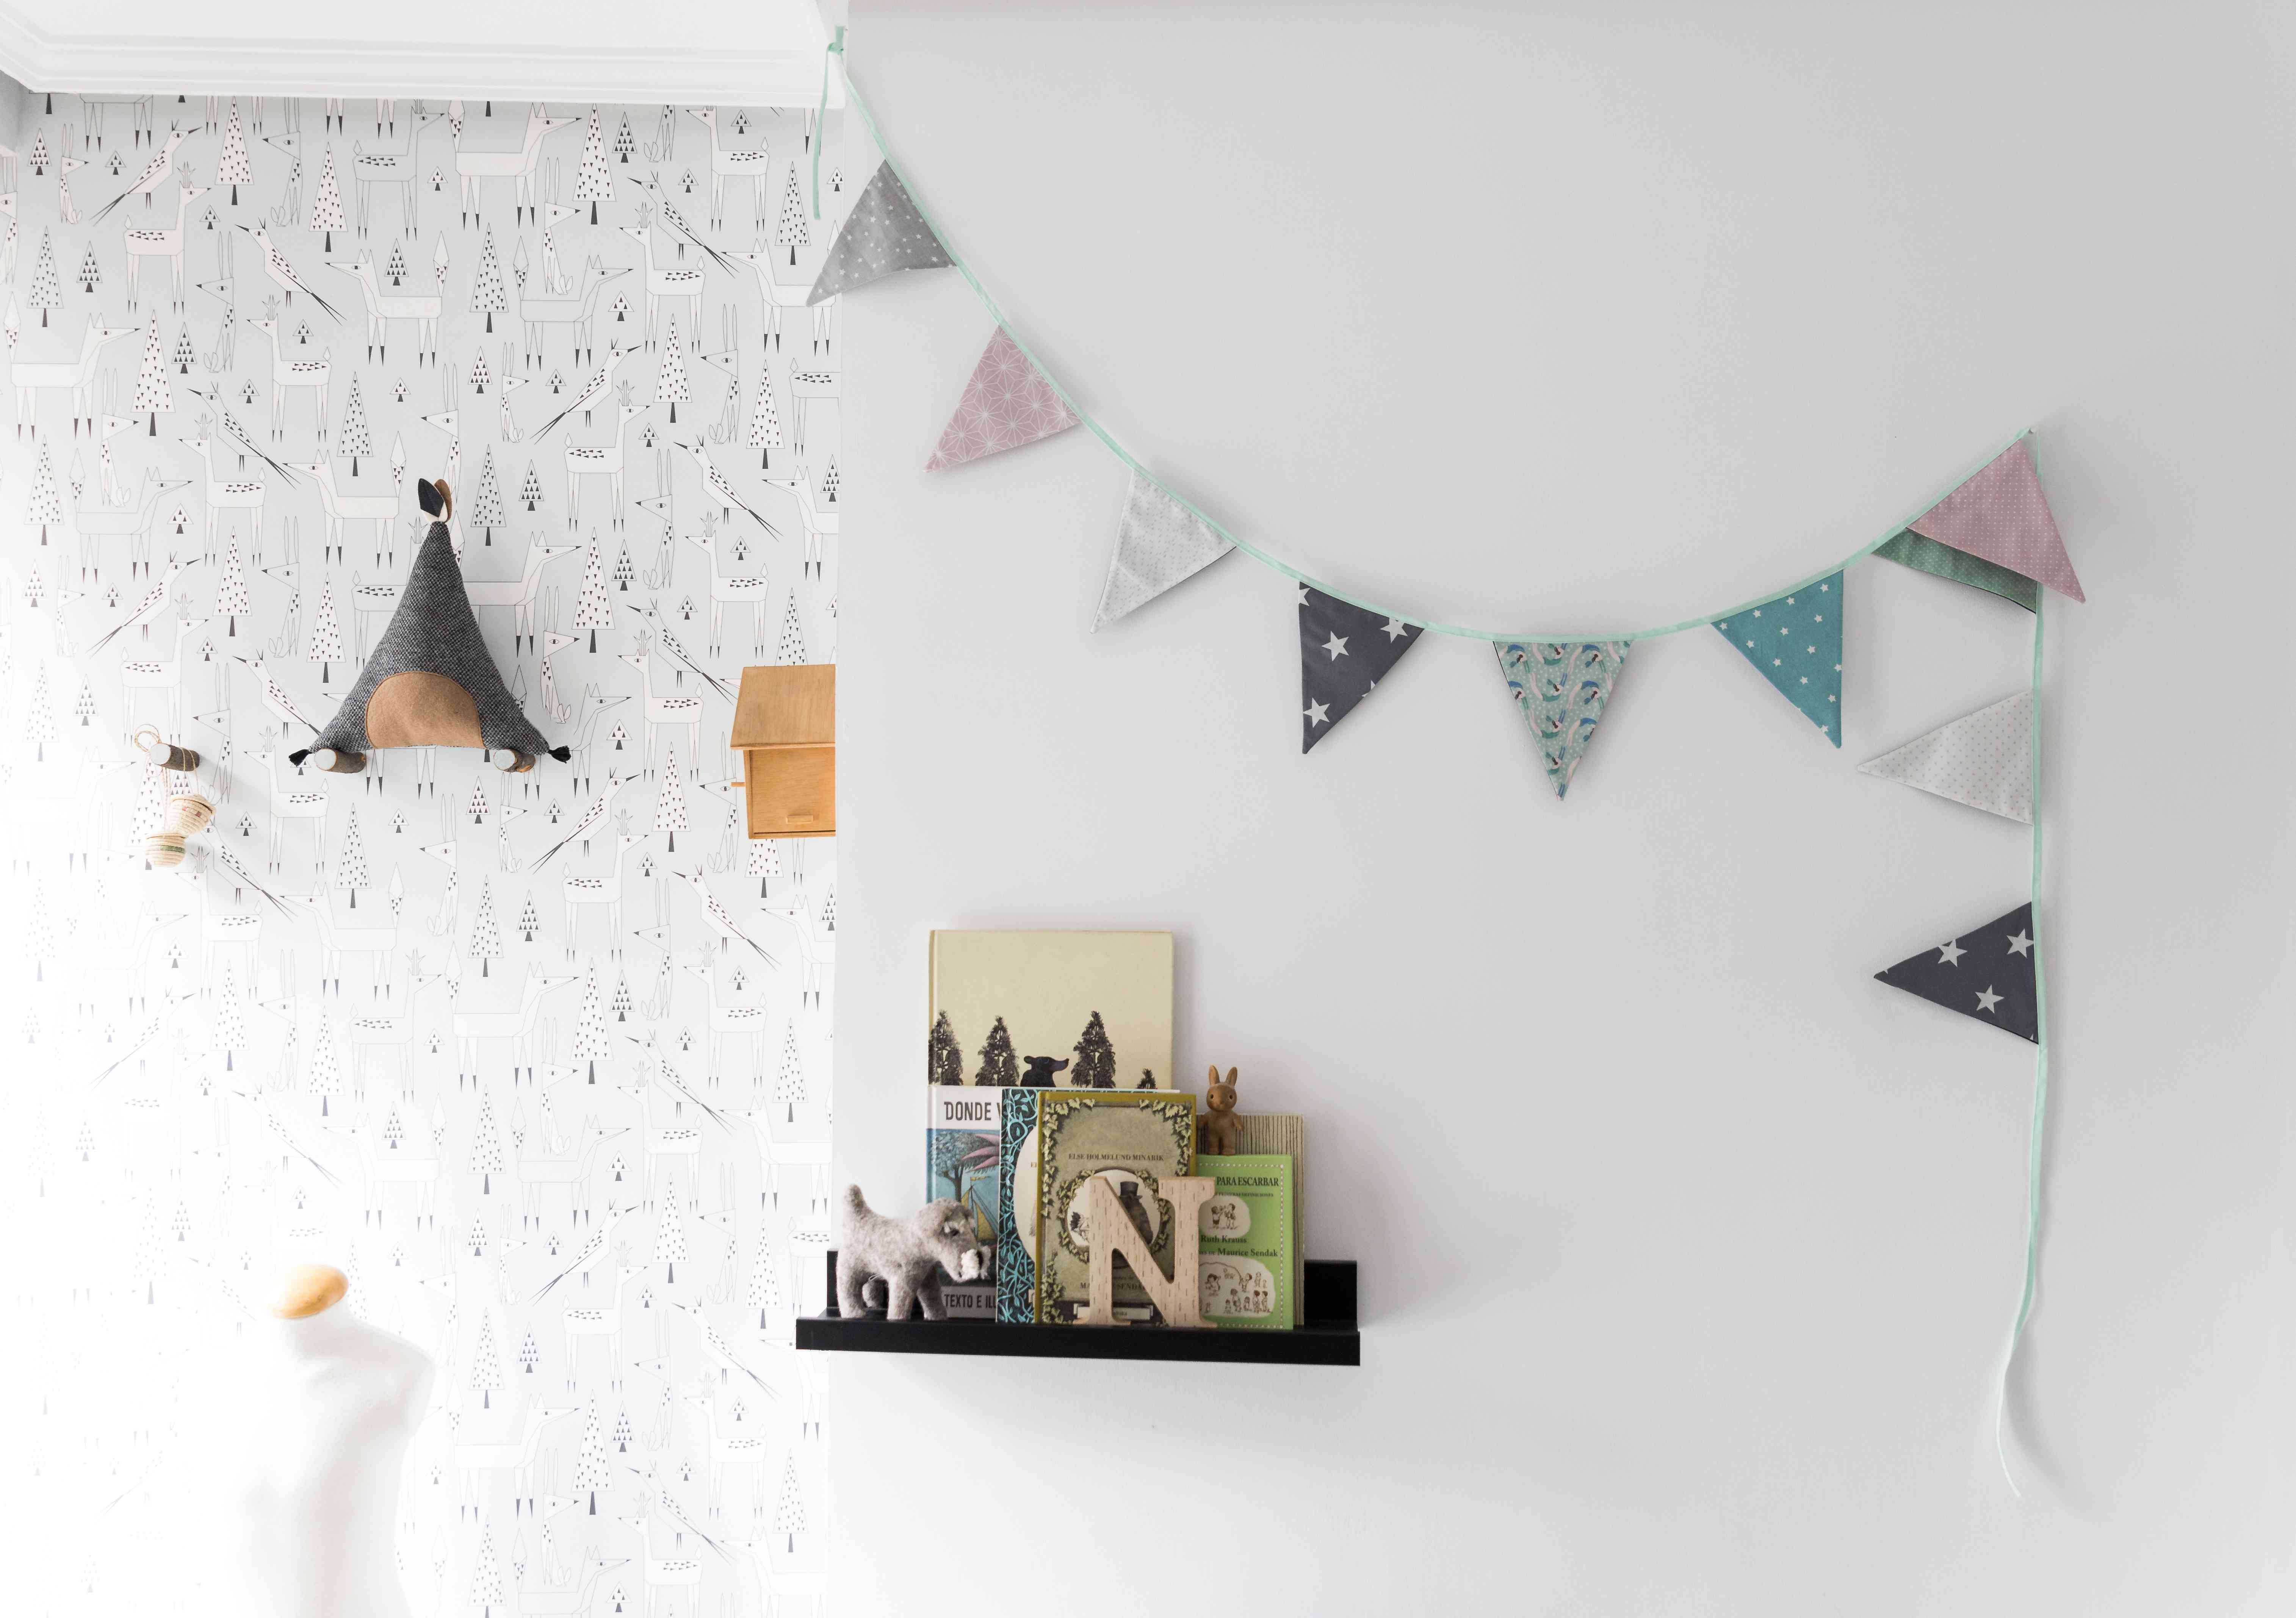 Children's Room Decorated in Nordic Style - Stock Photo